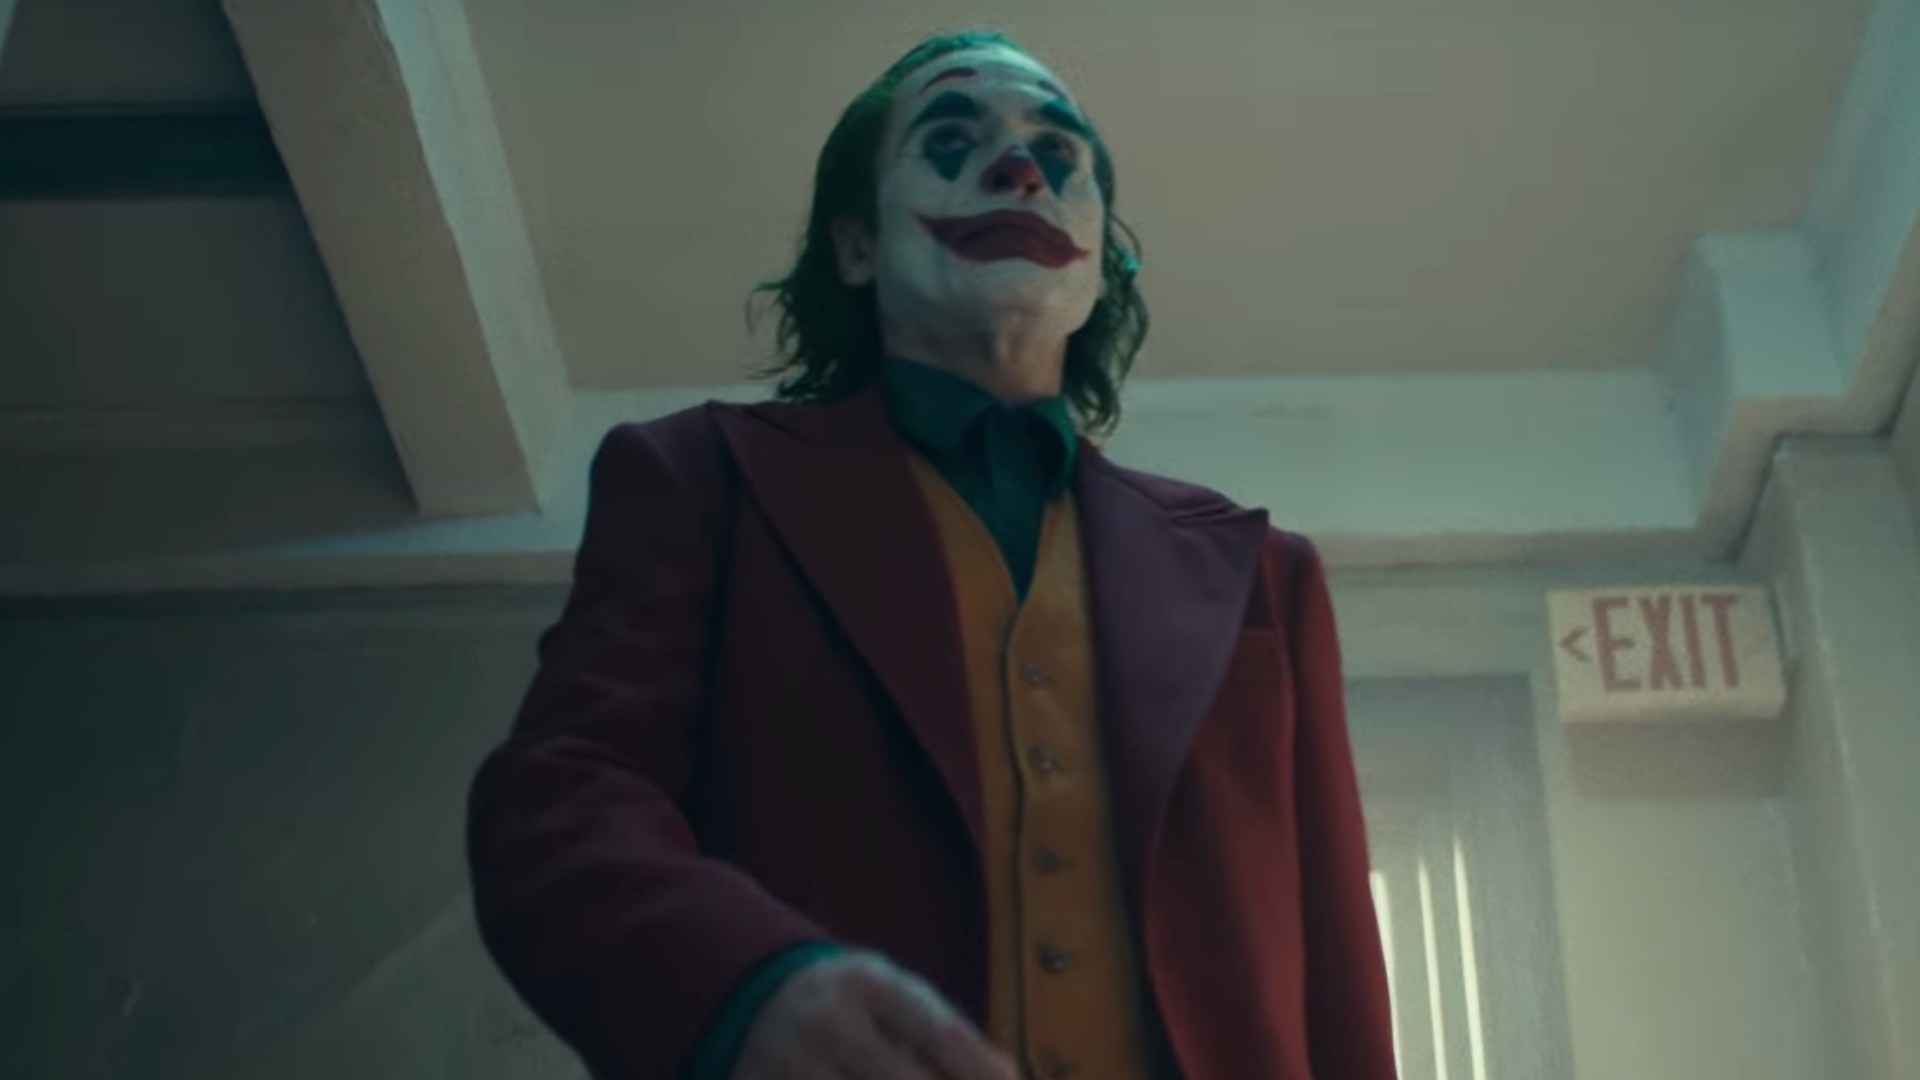 the-first-trailer-for-dcs-joker-is-sure-to-surprise-same-fans-watch-it-now-social.jpg